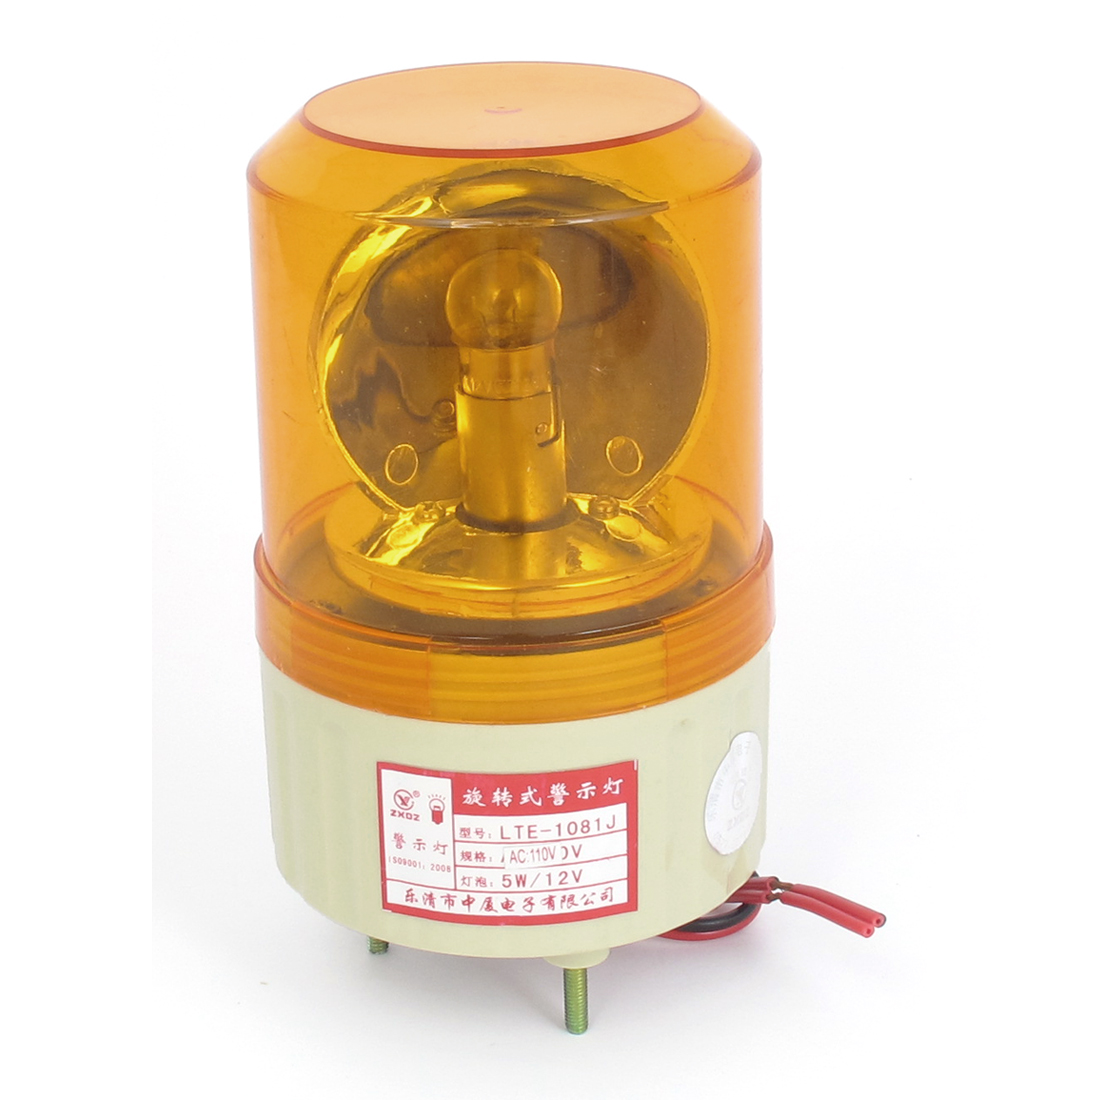 Home Factory AC 110V Buzzer Sound Rotating Industrial Signal Warning Lamp Orange